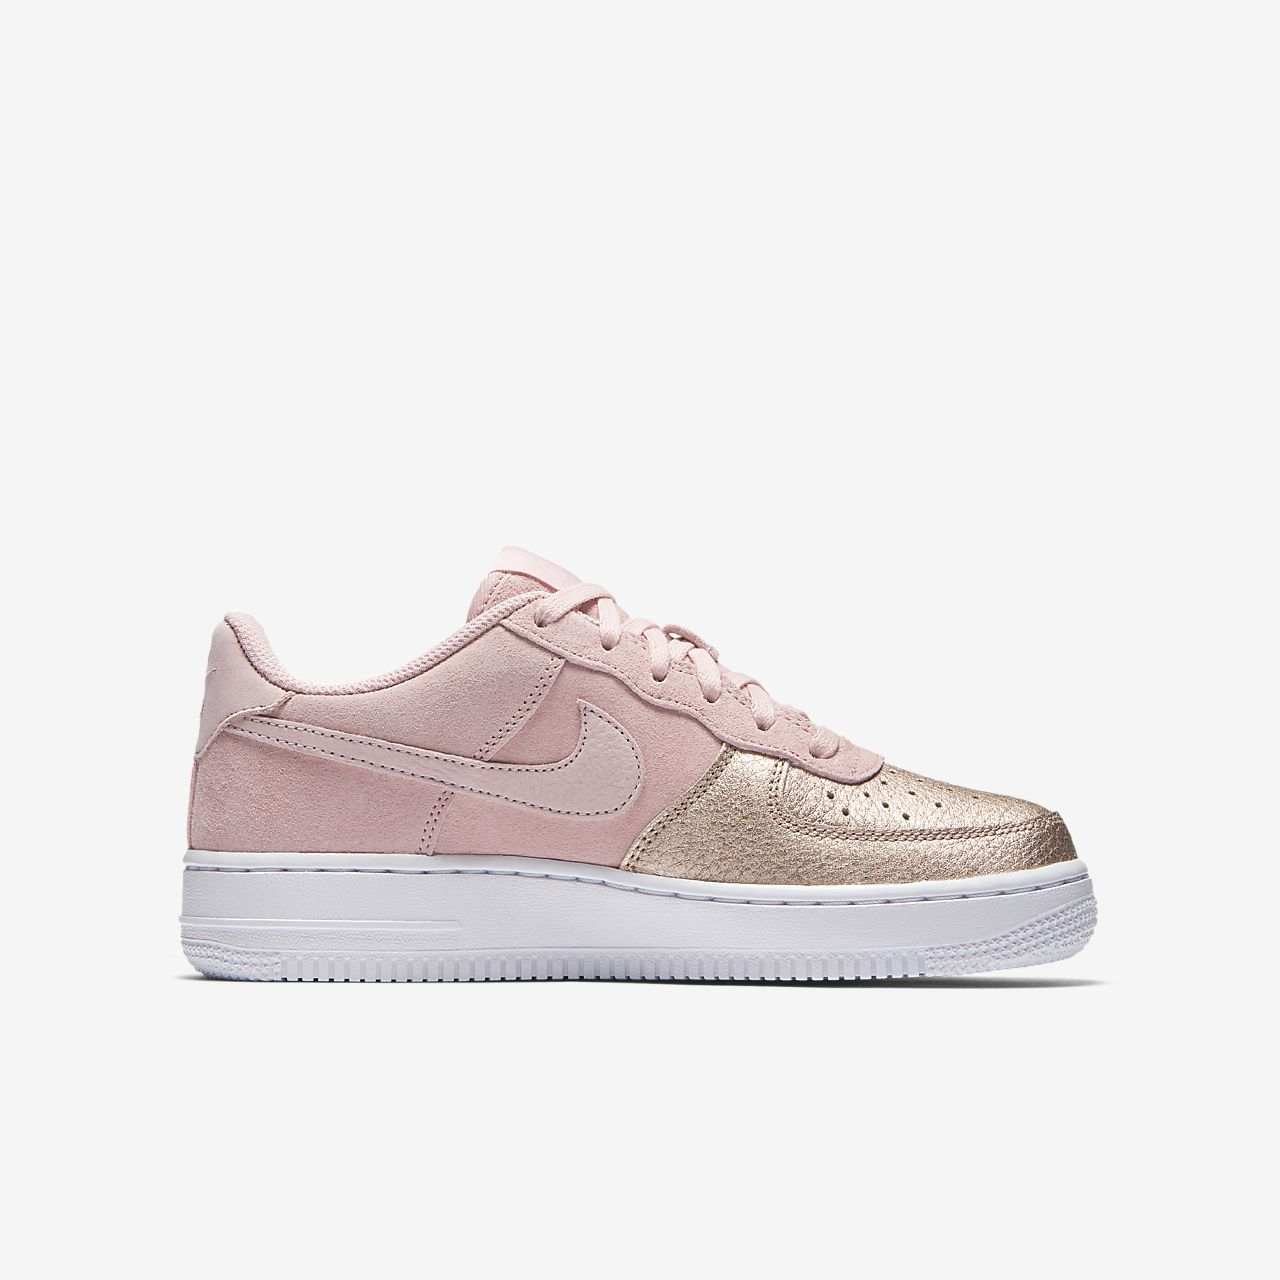 air force 1 pink and white nz